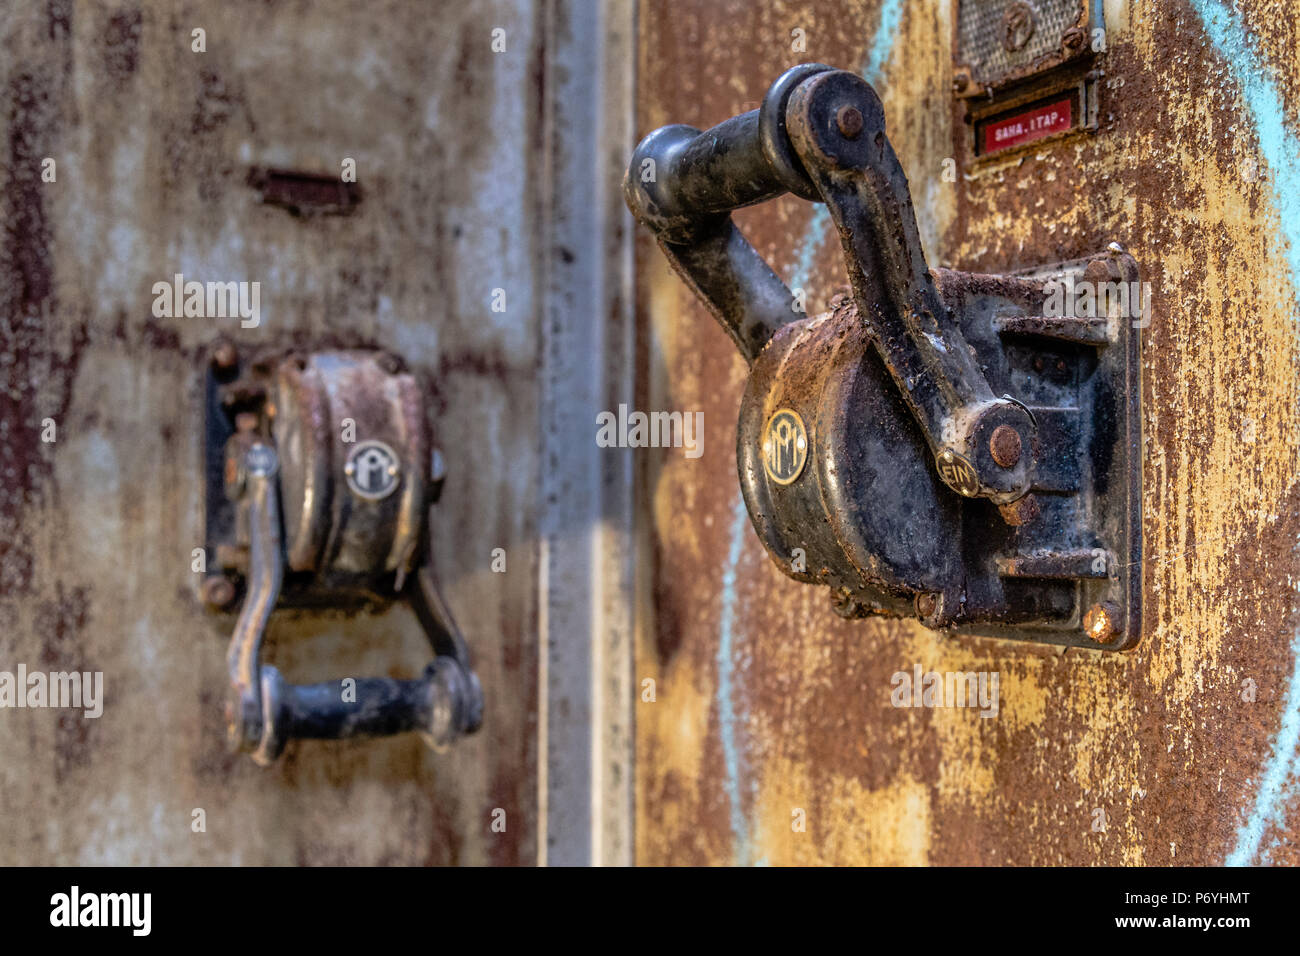 Two sturdy and rusty machine levers in old abandoned factory - Stock Image